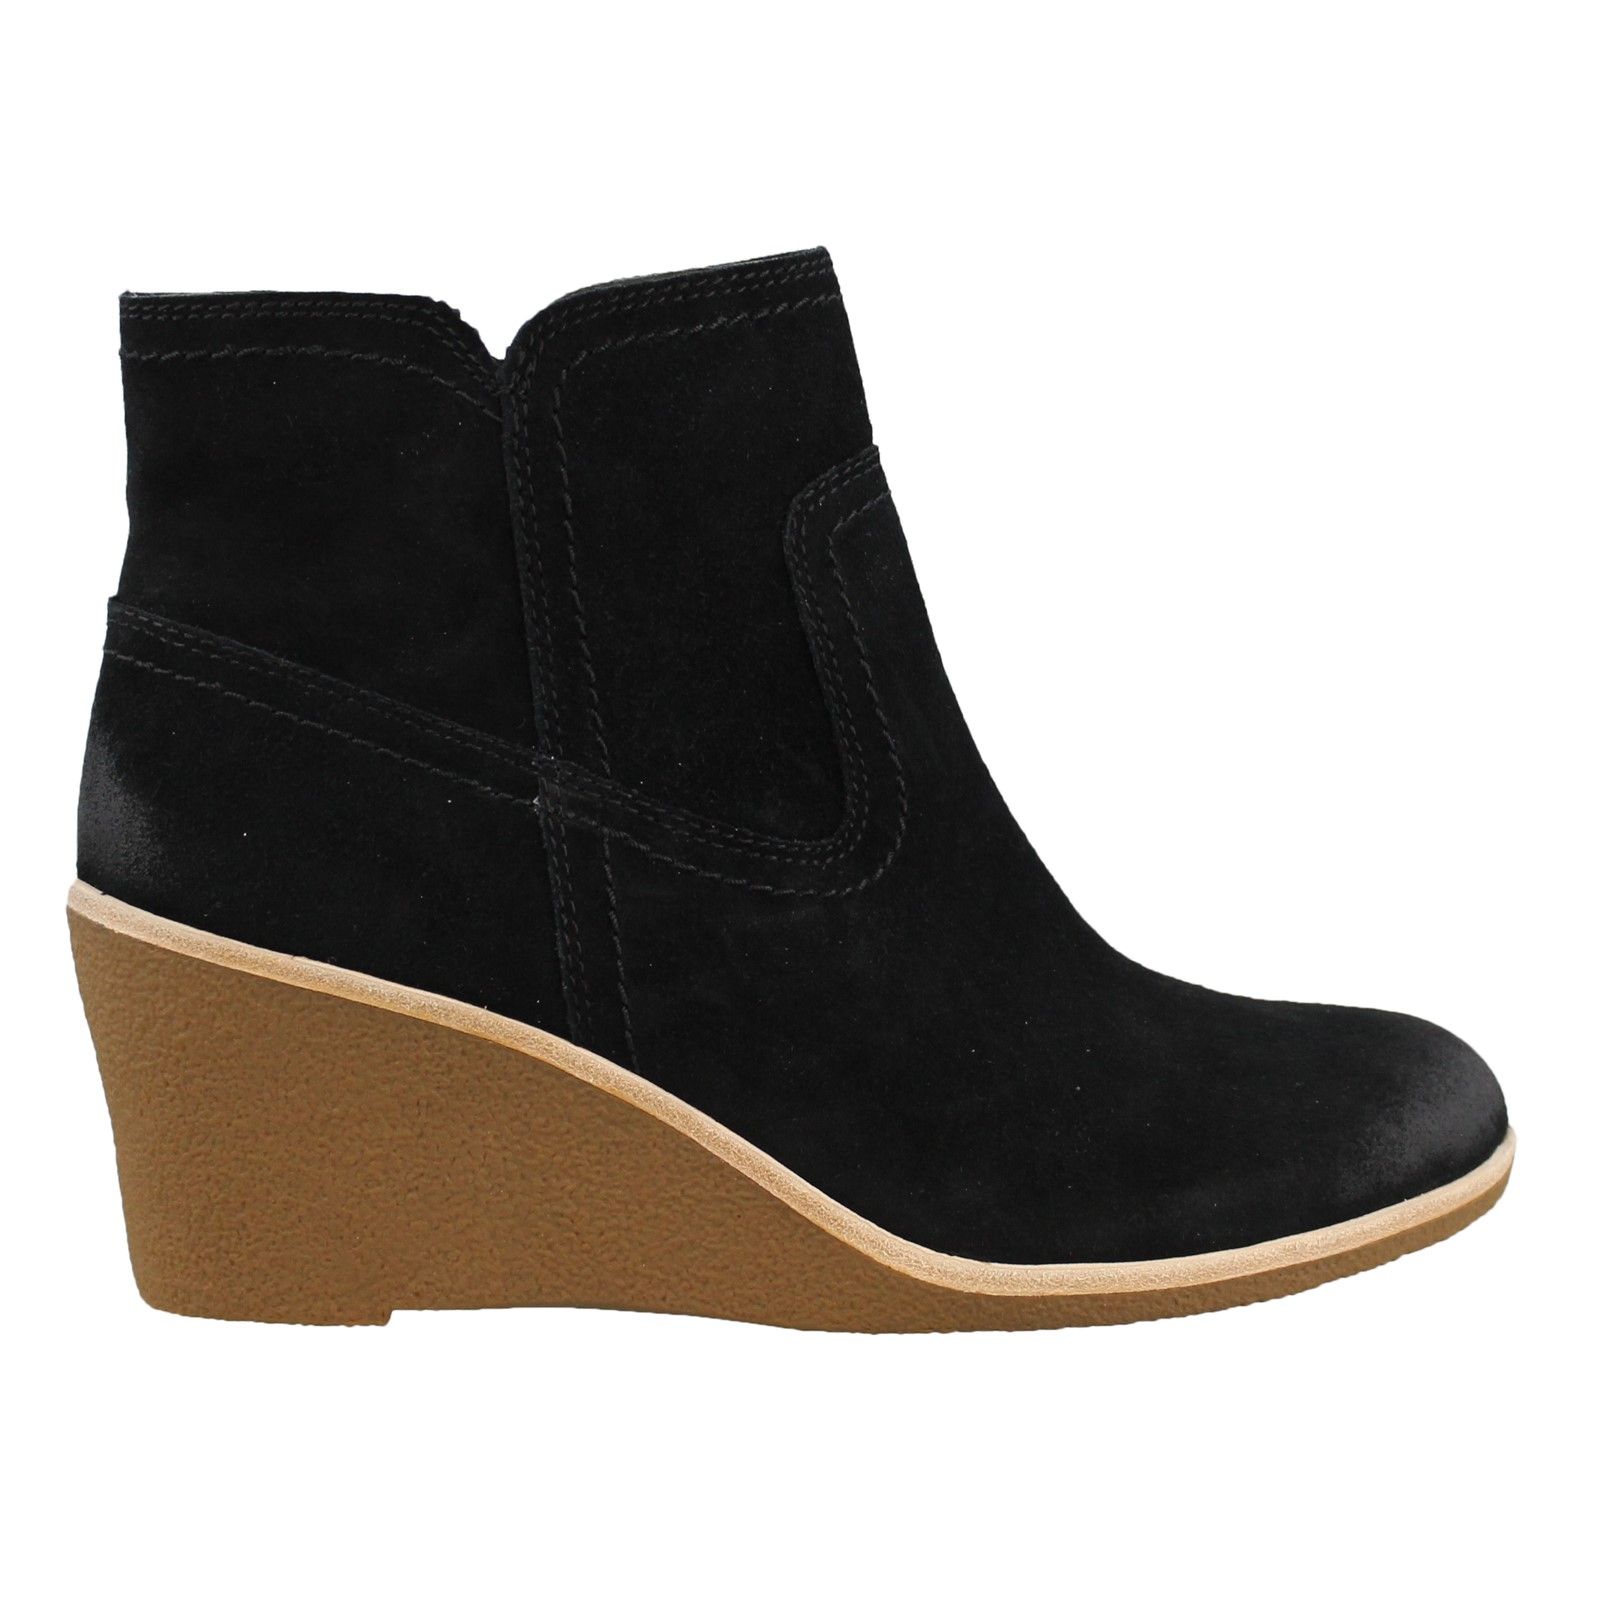 Women's GH Bass and Co, Rosanne Wedge Ankle Boots